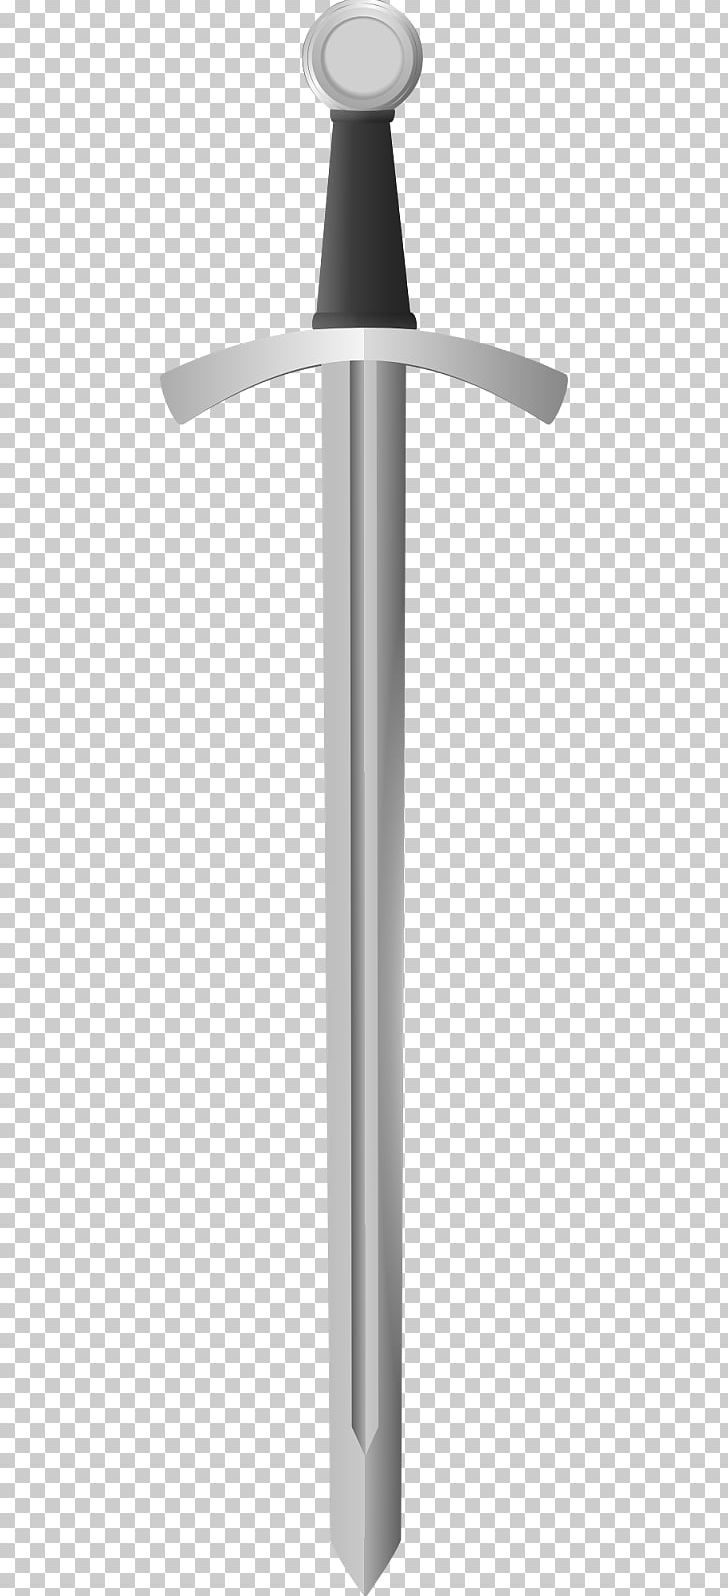 Knightly Sword Viking Sword PNG, Clipart, Angle, Clip Art.